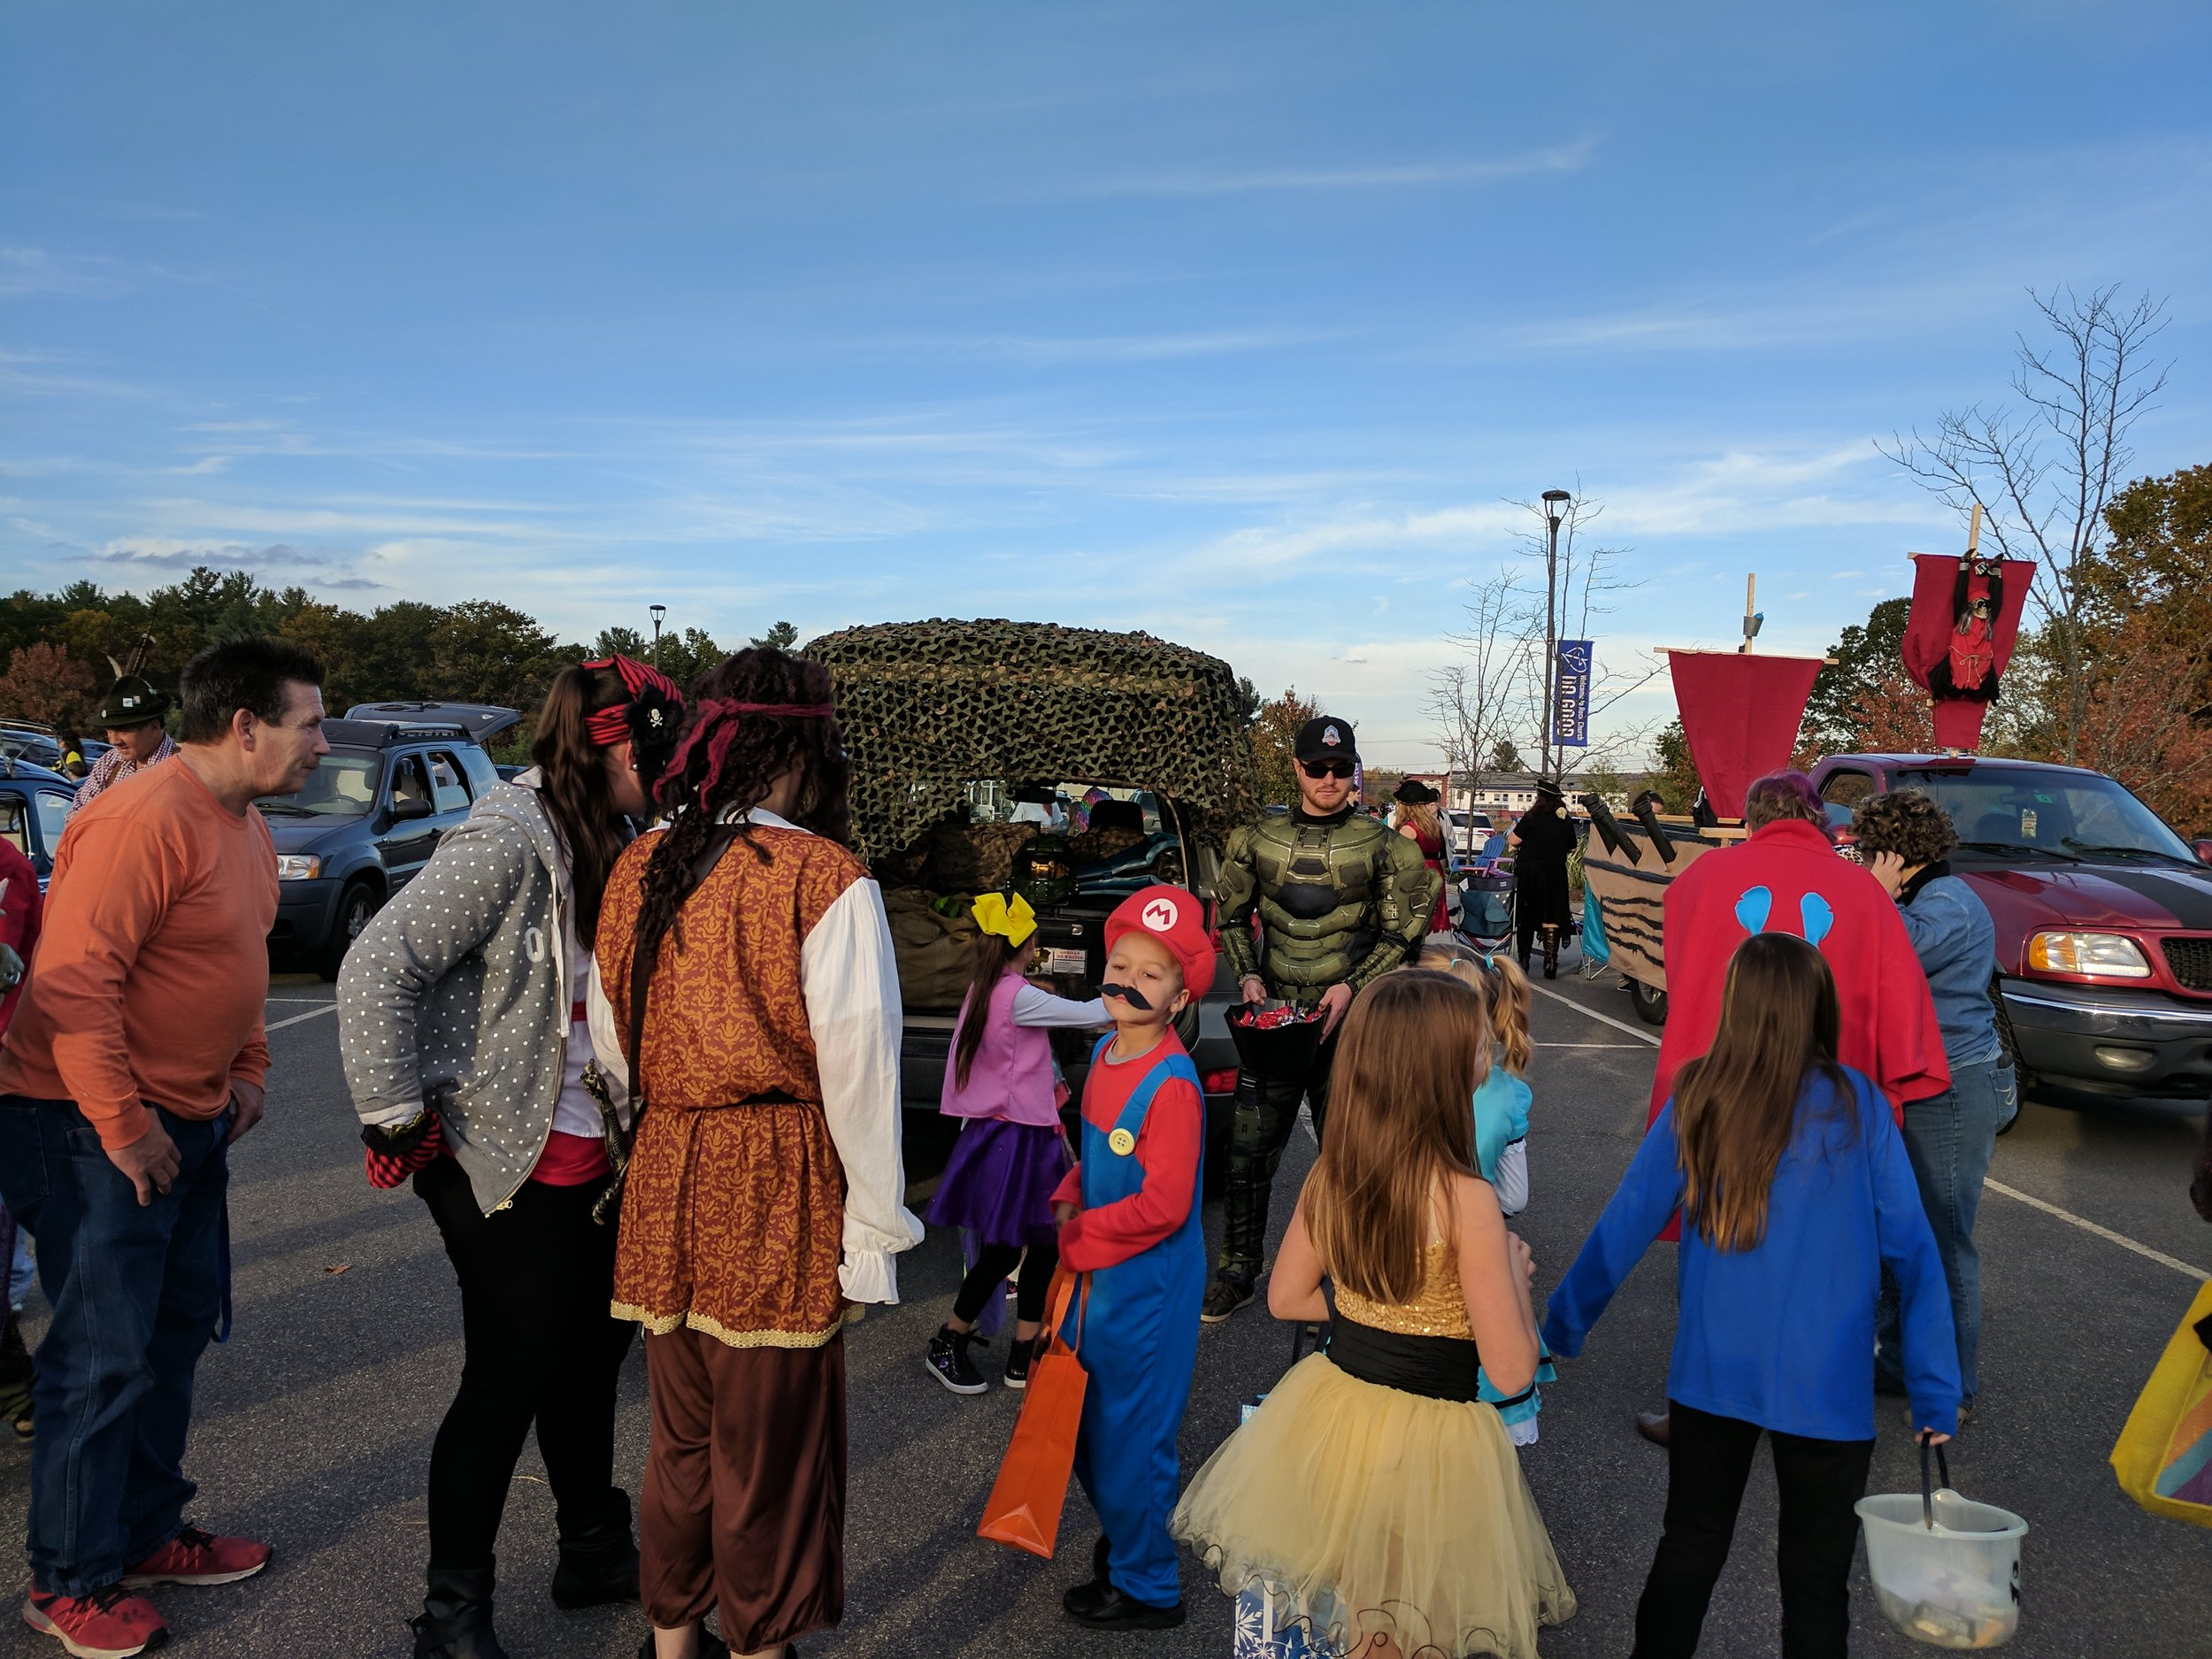 Join us for Plaistow's Trunk or Treat this Saturday from 3:00 to 5:00 pm